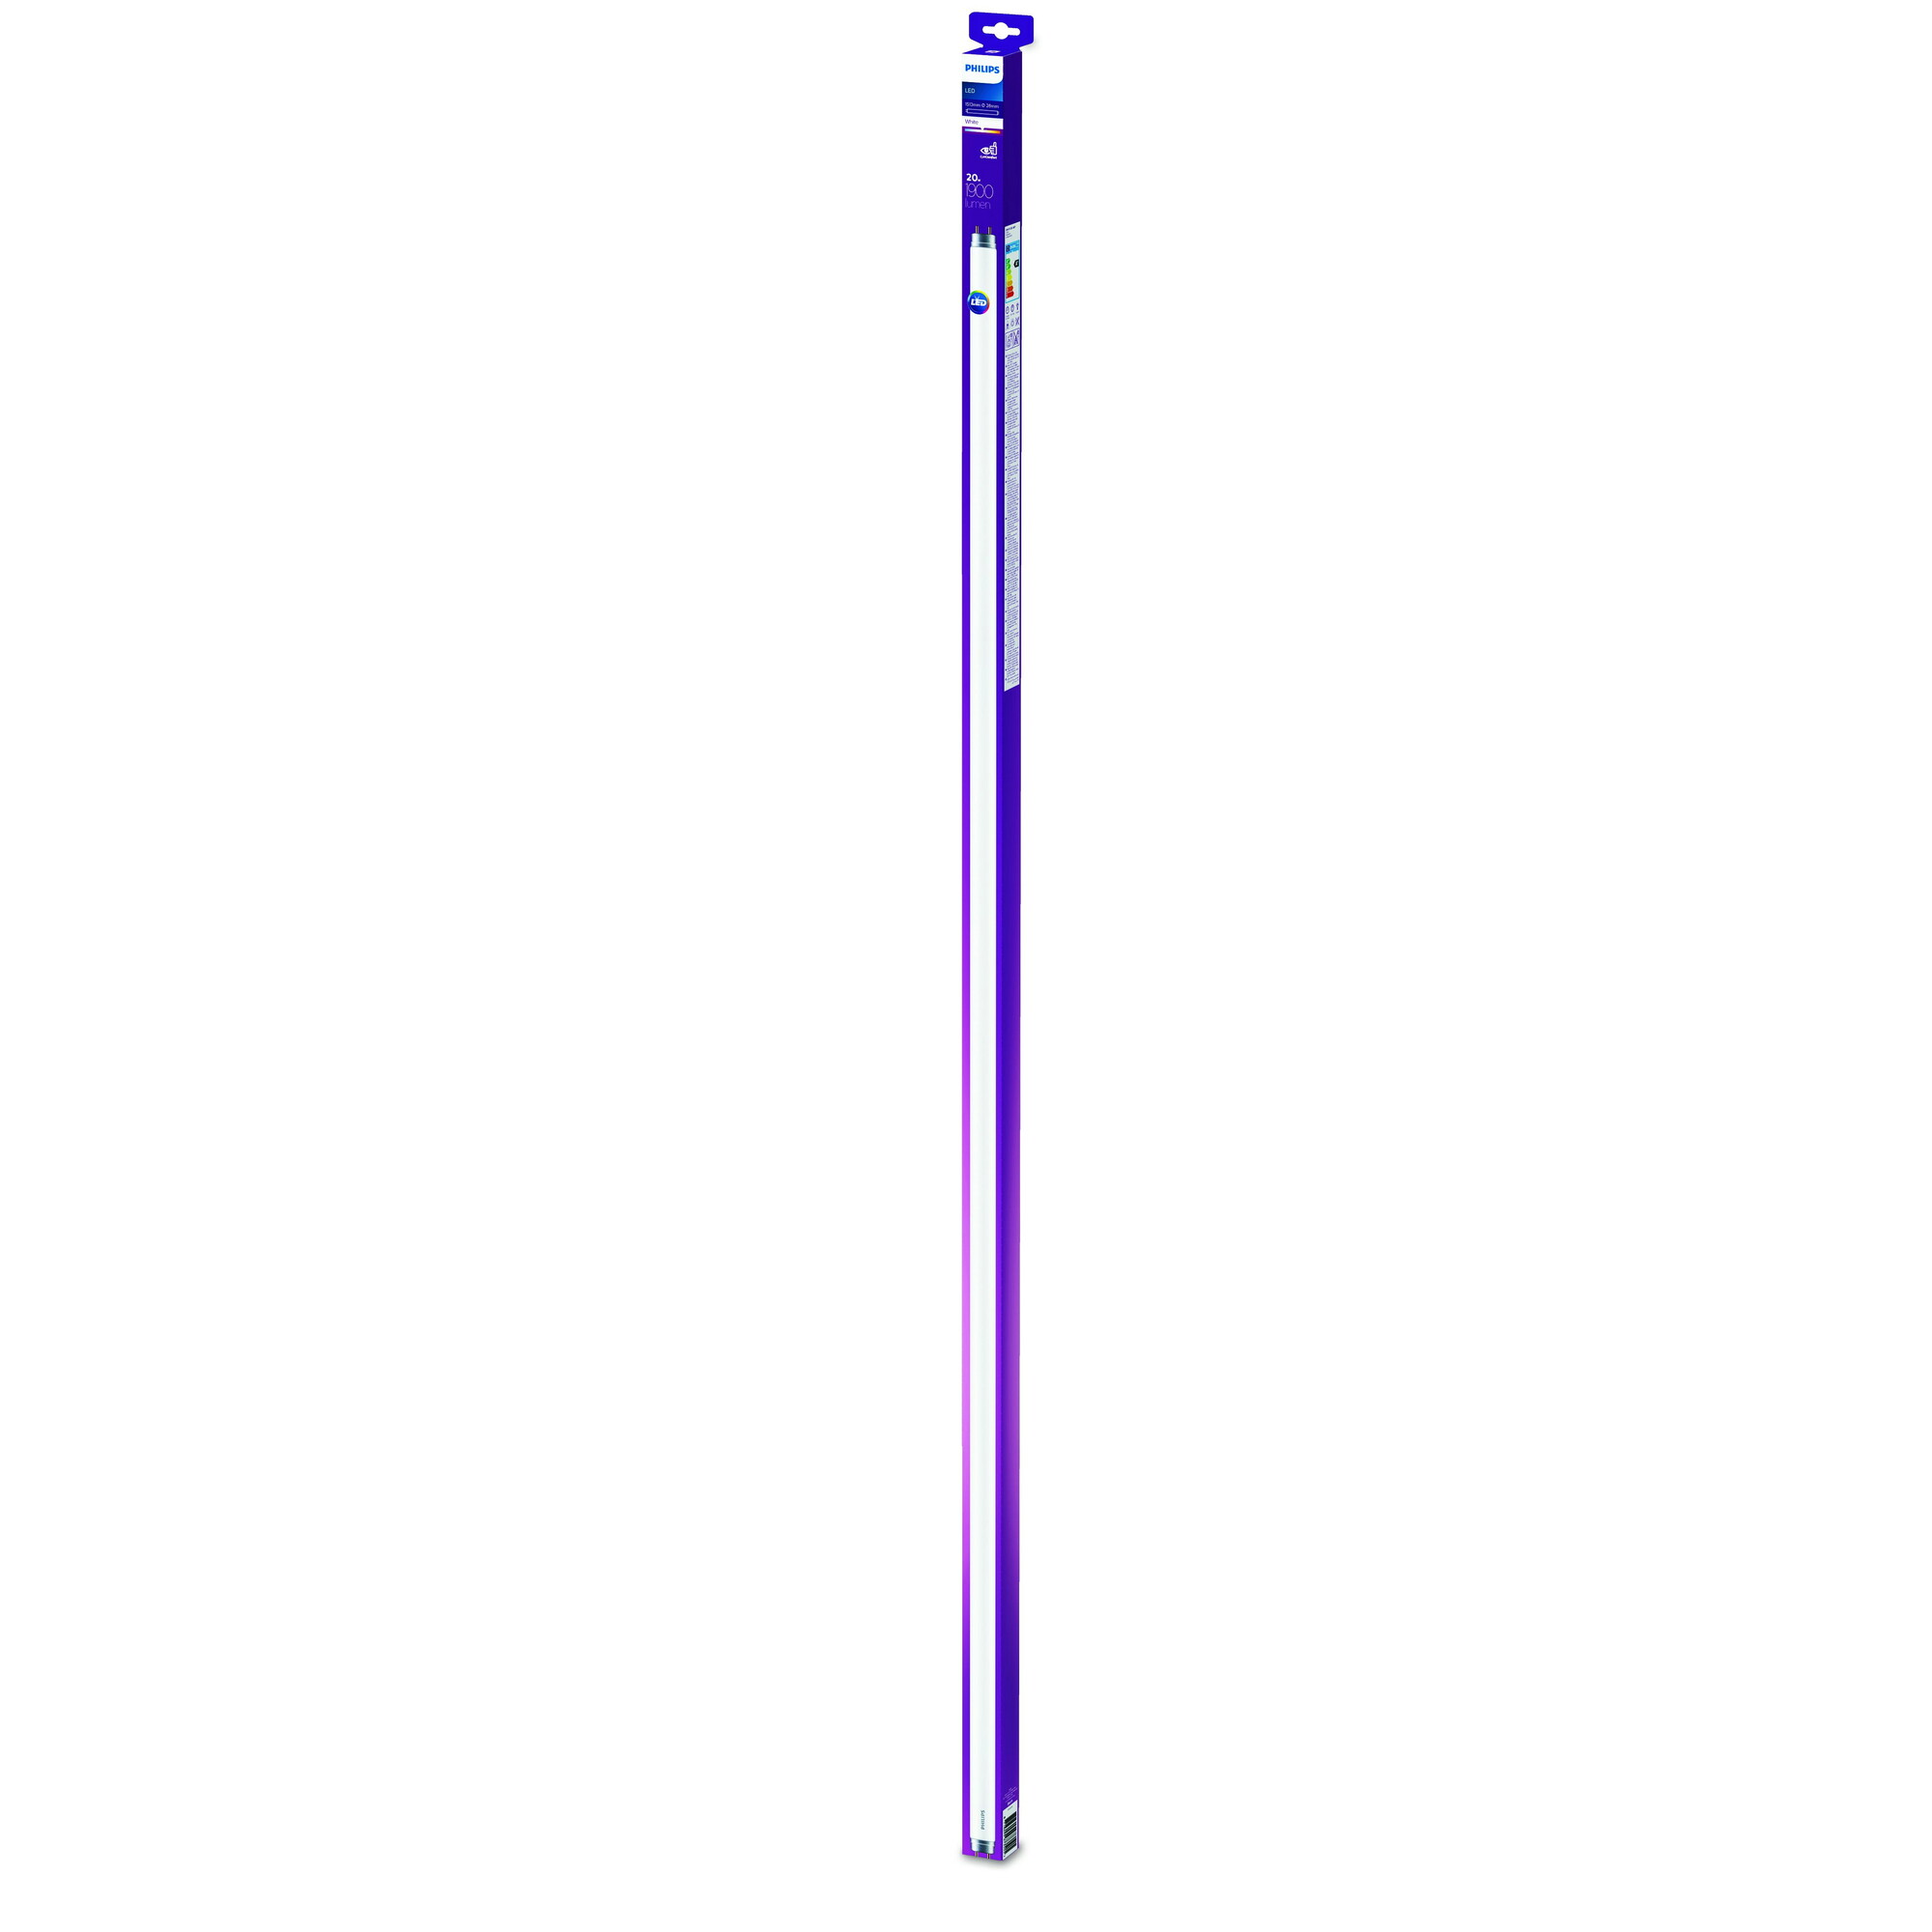 Philips LED T8 G13 20W 1900lm 3000K Tube Frosted